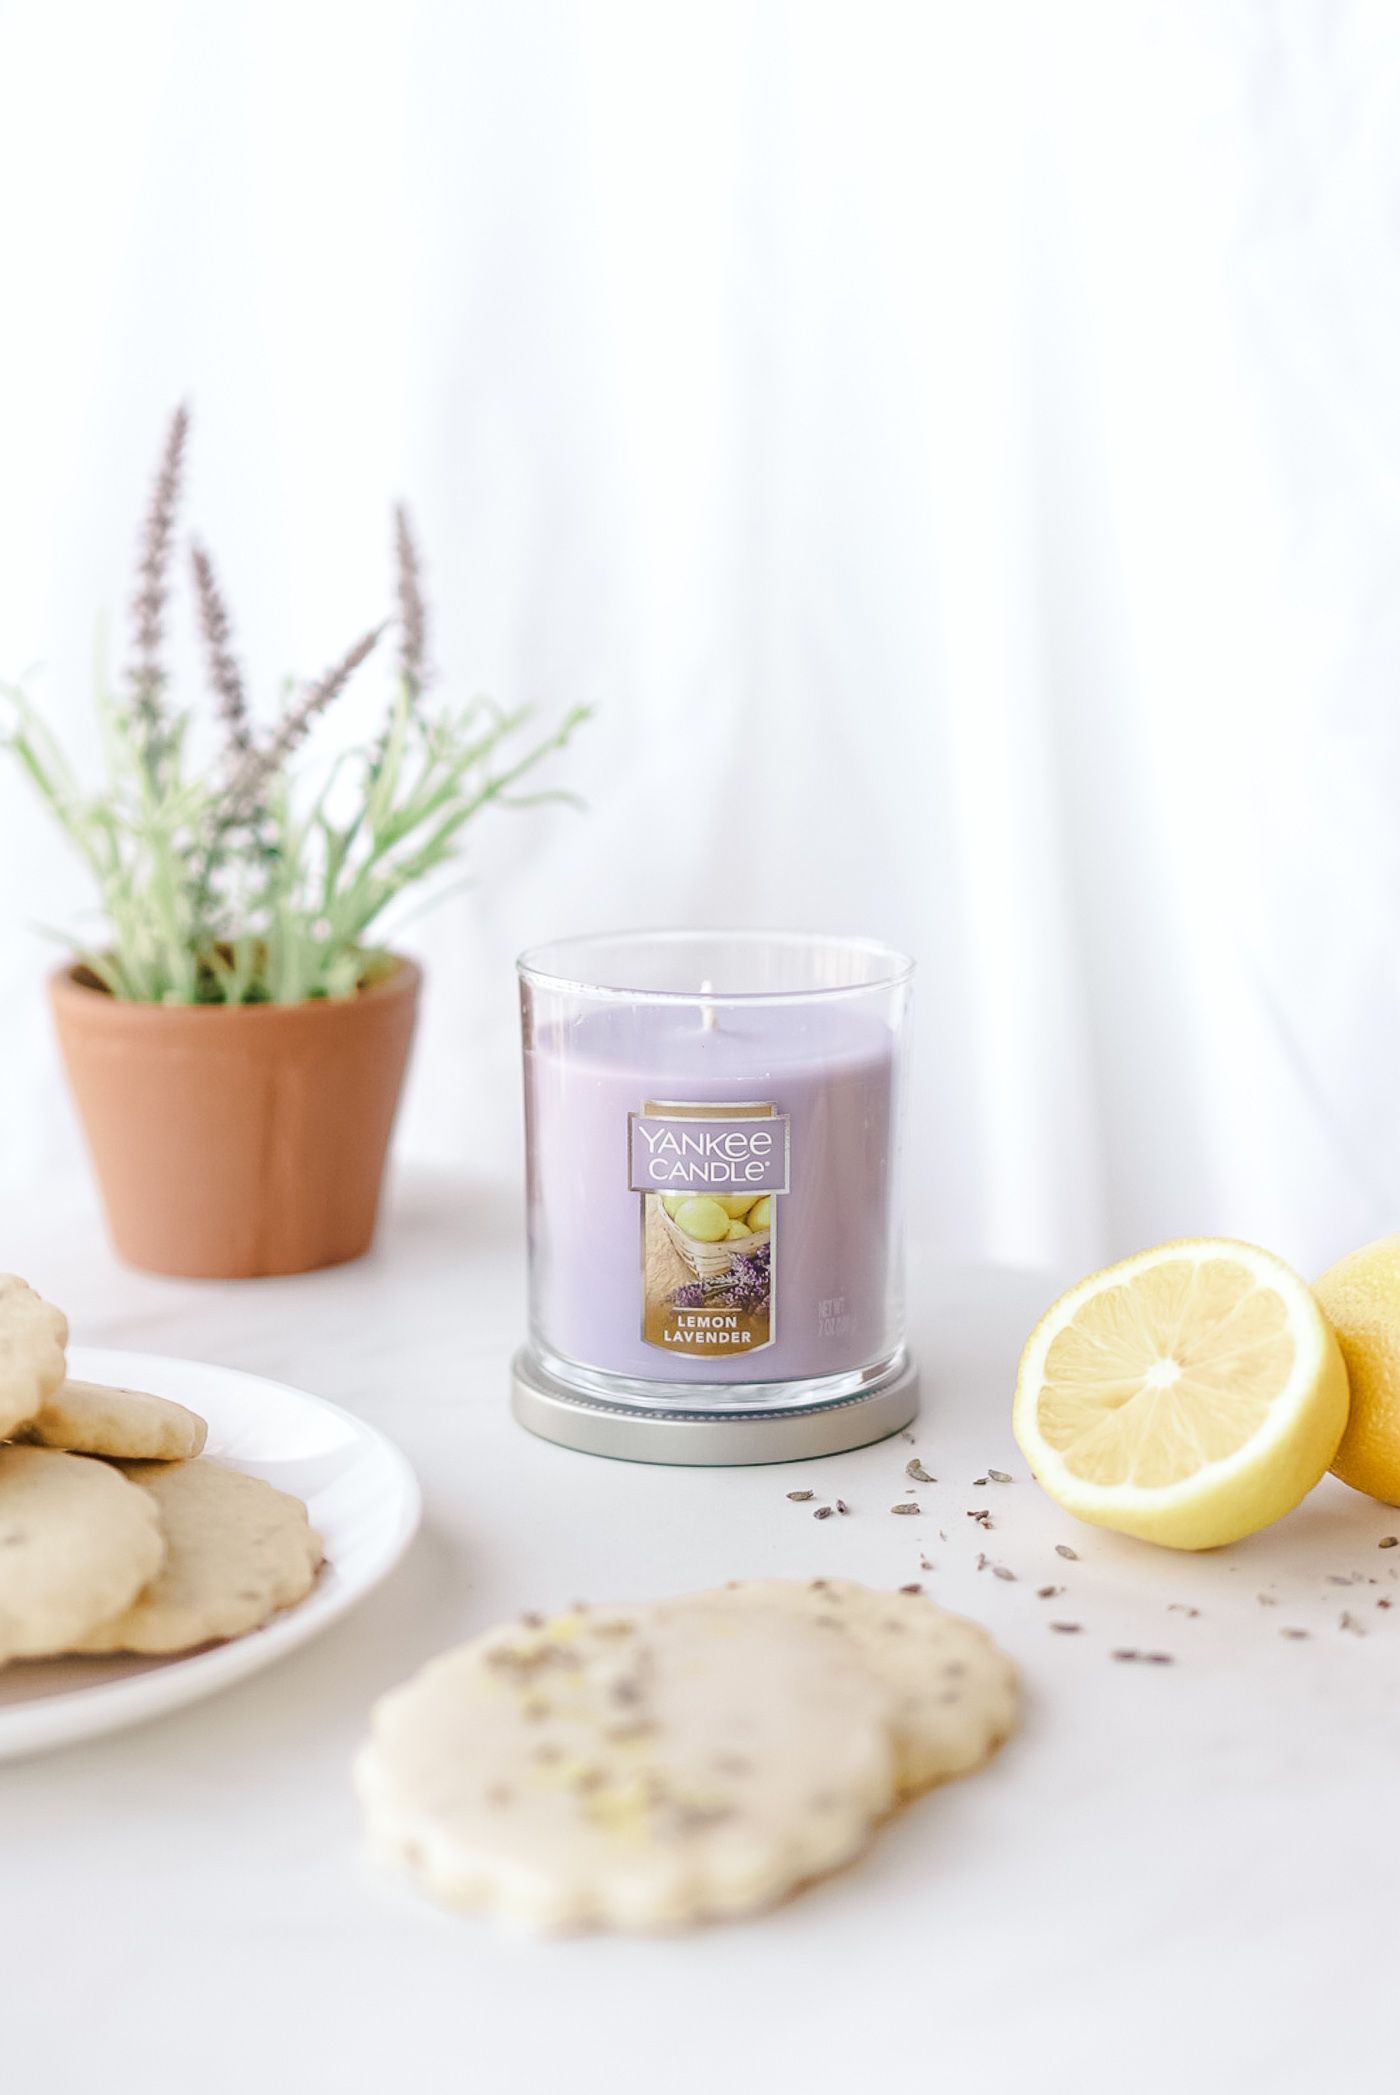 yankee candle lemon lavender on white marble counter